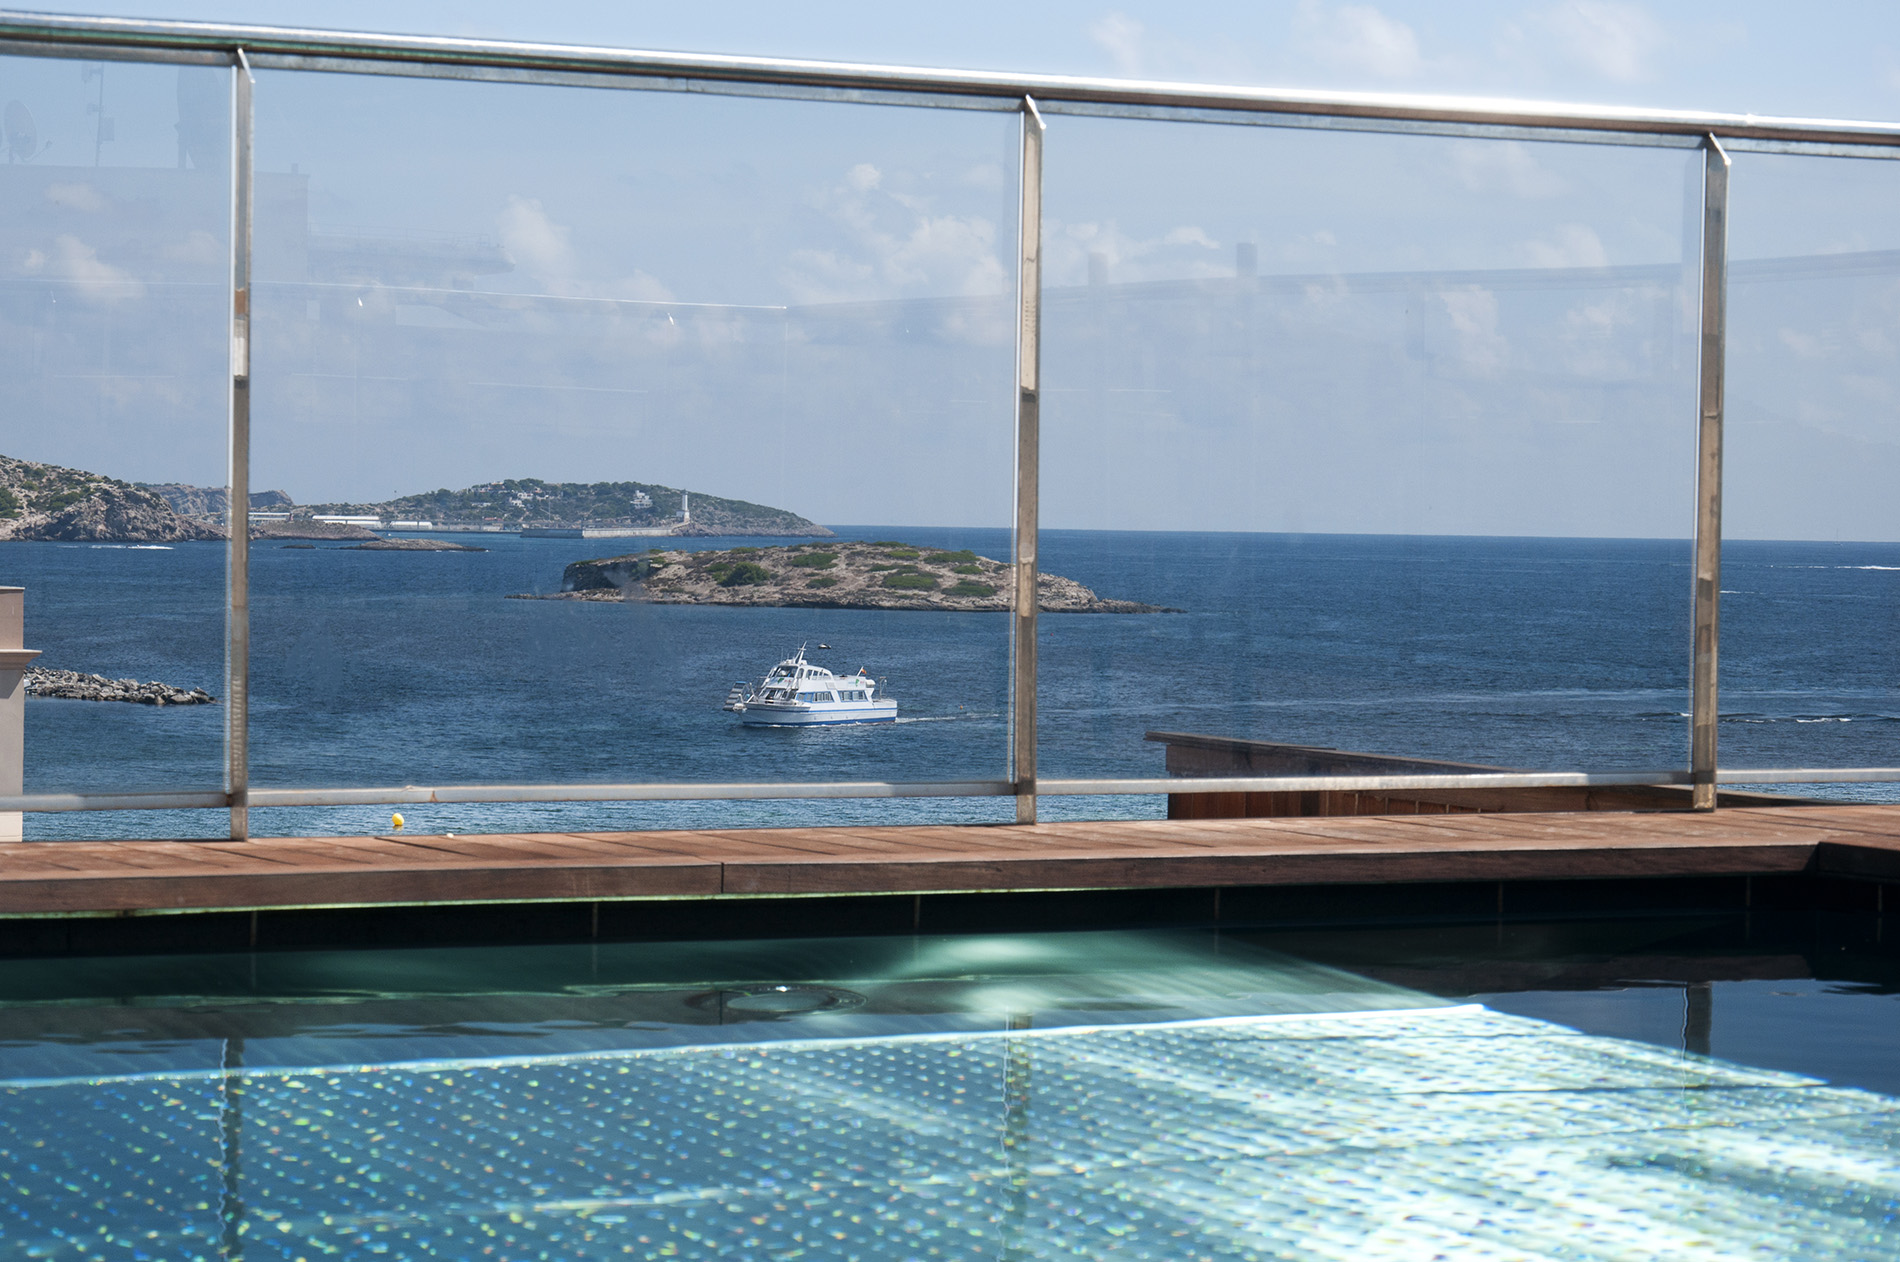 Apartment for Sale at Apartment With Sea View Ibiza, Ibiza, 07800 Spain